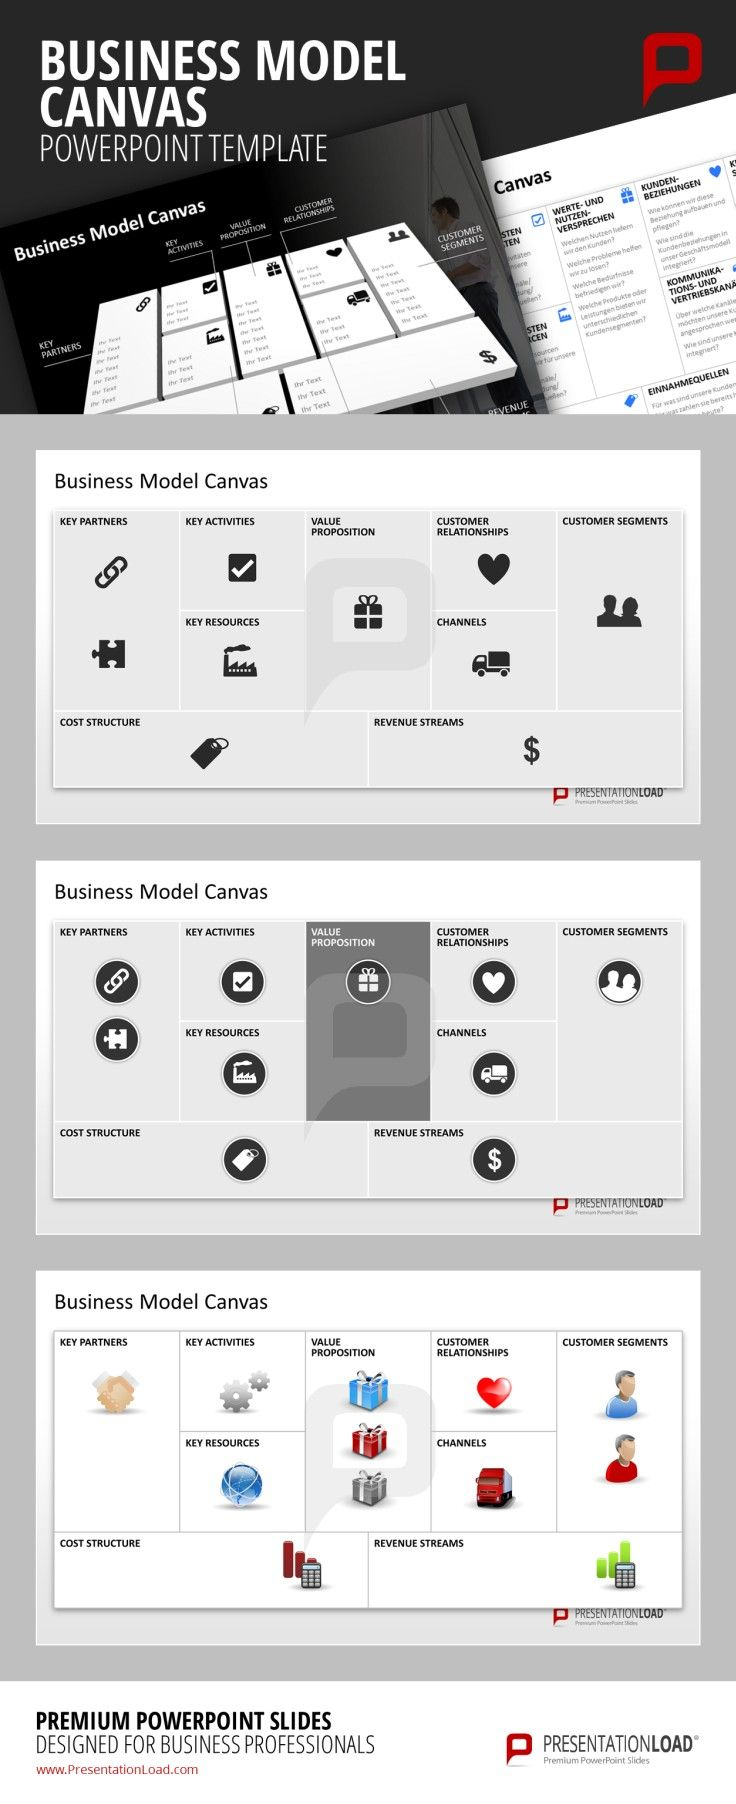 Business model canvas ppt template with the modules customer segment business model canvas ppt template with the modules customer segment value propositions communication and toneelgroepblik Choice Image